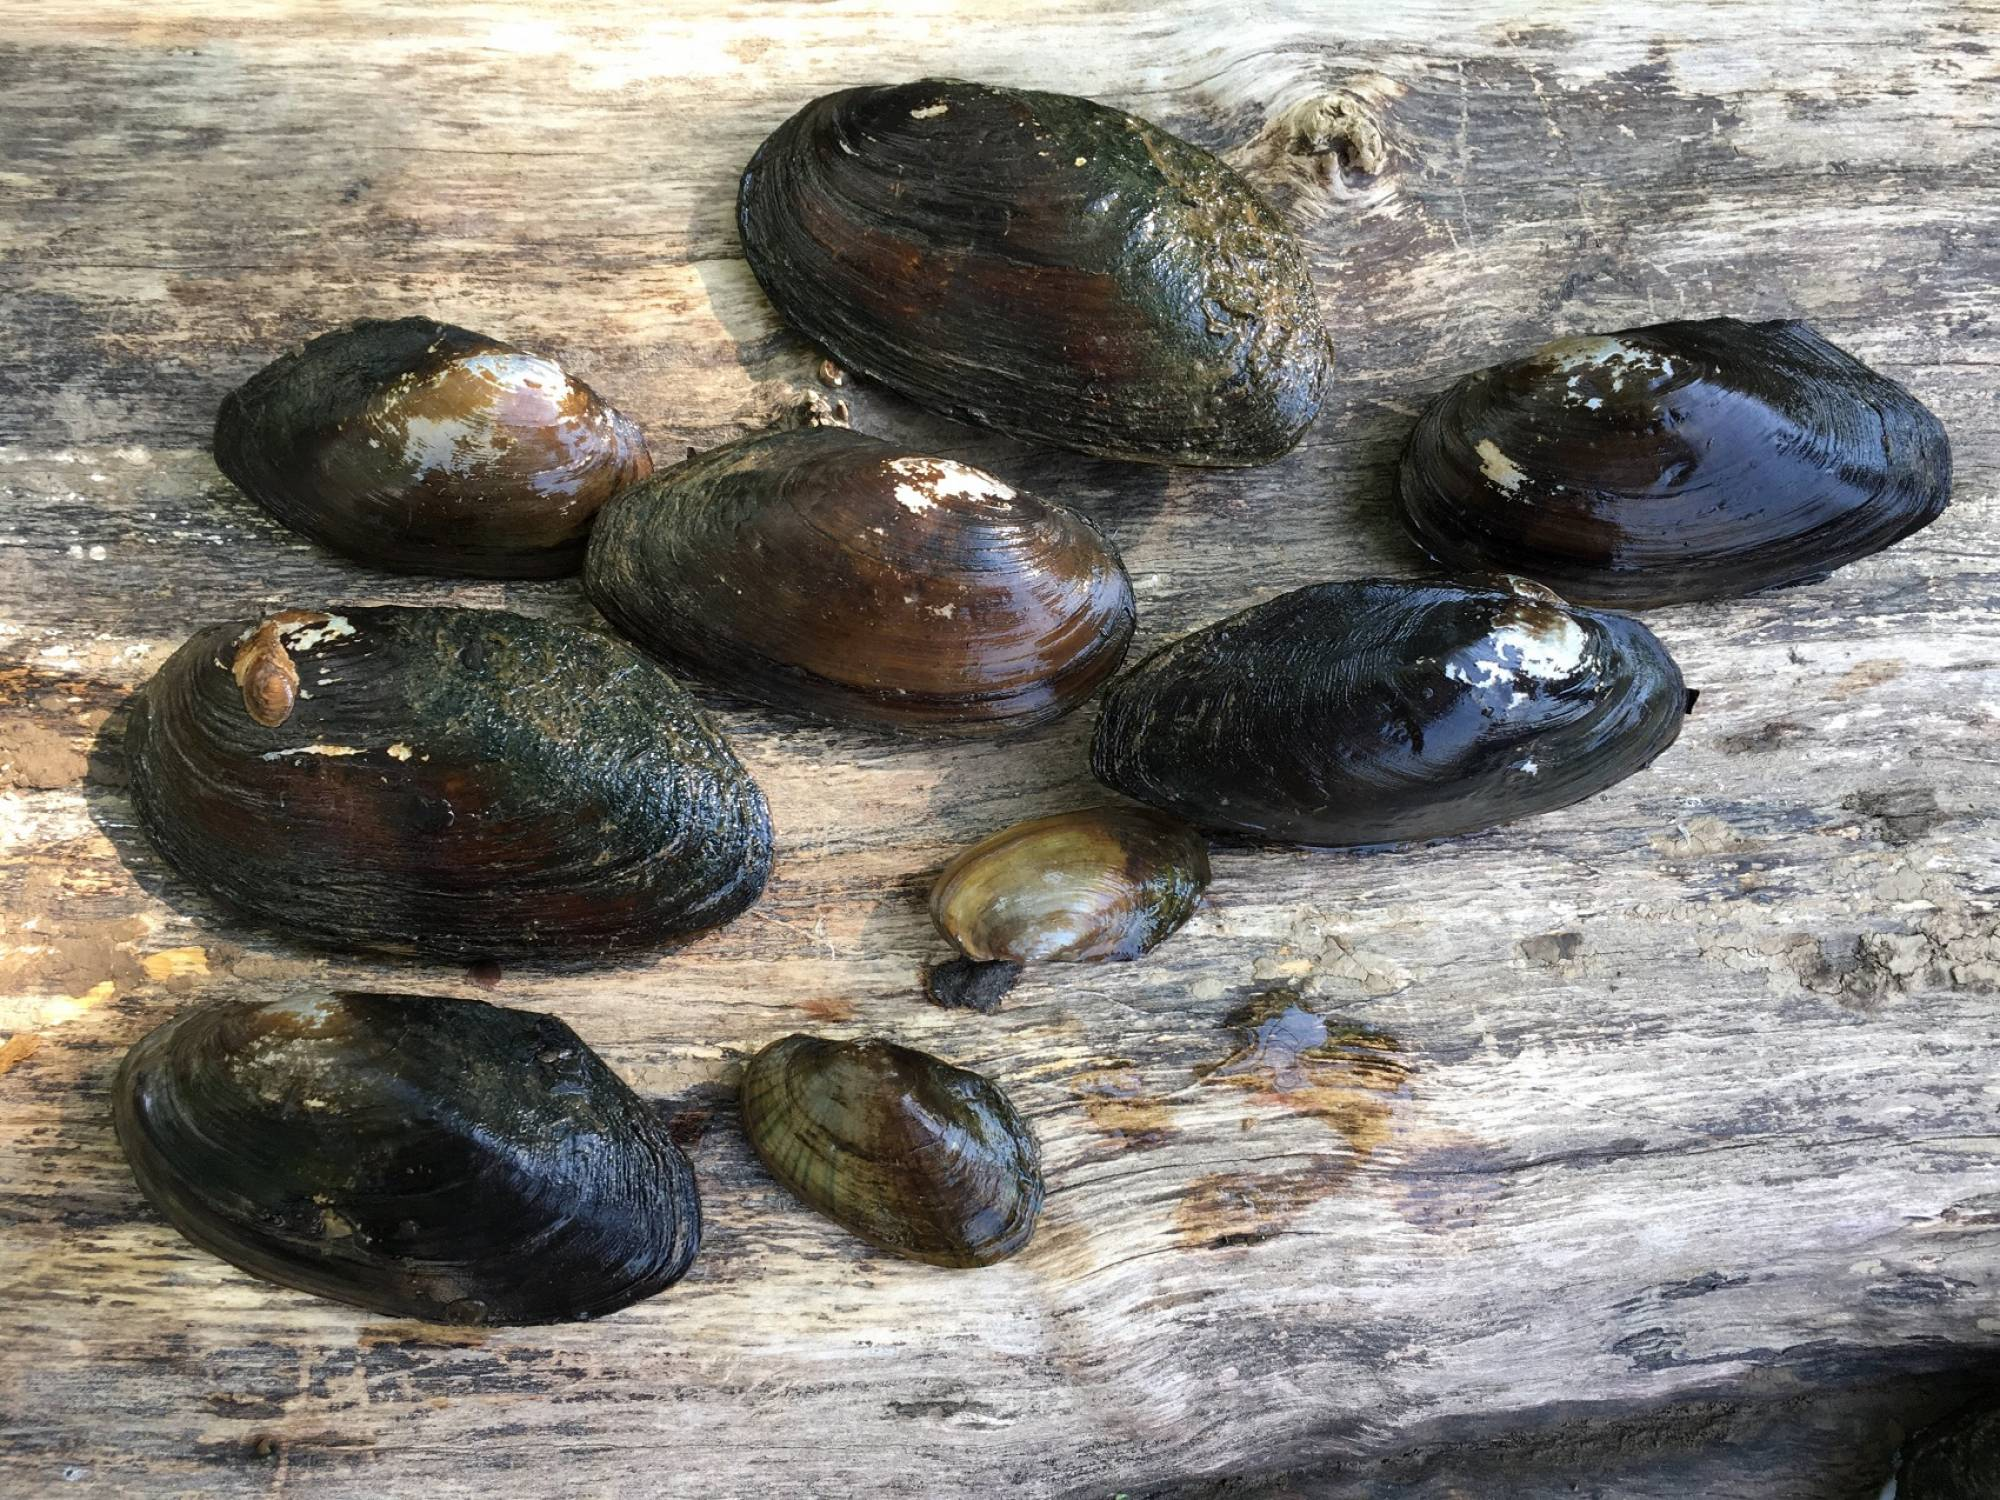 These 9 mussels of 4 species where found inside one of the PVC-pipe cages where we propagate submerged aquatic vegetation at Buzzard Point, near the confluence with the Potomac River.